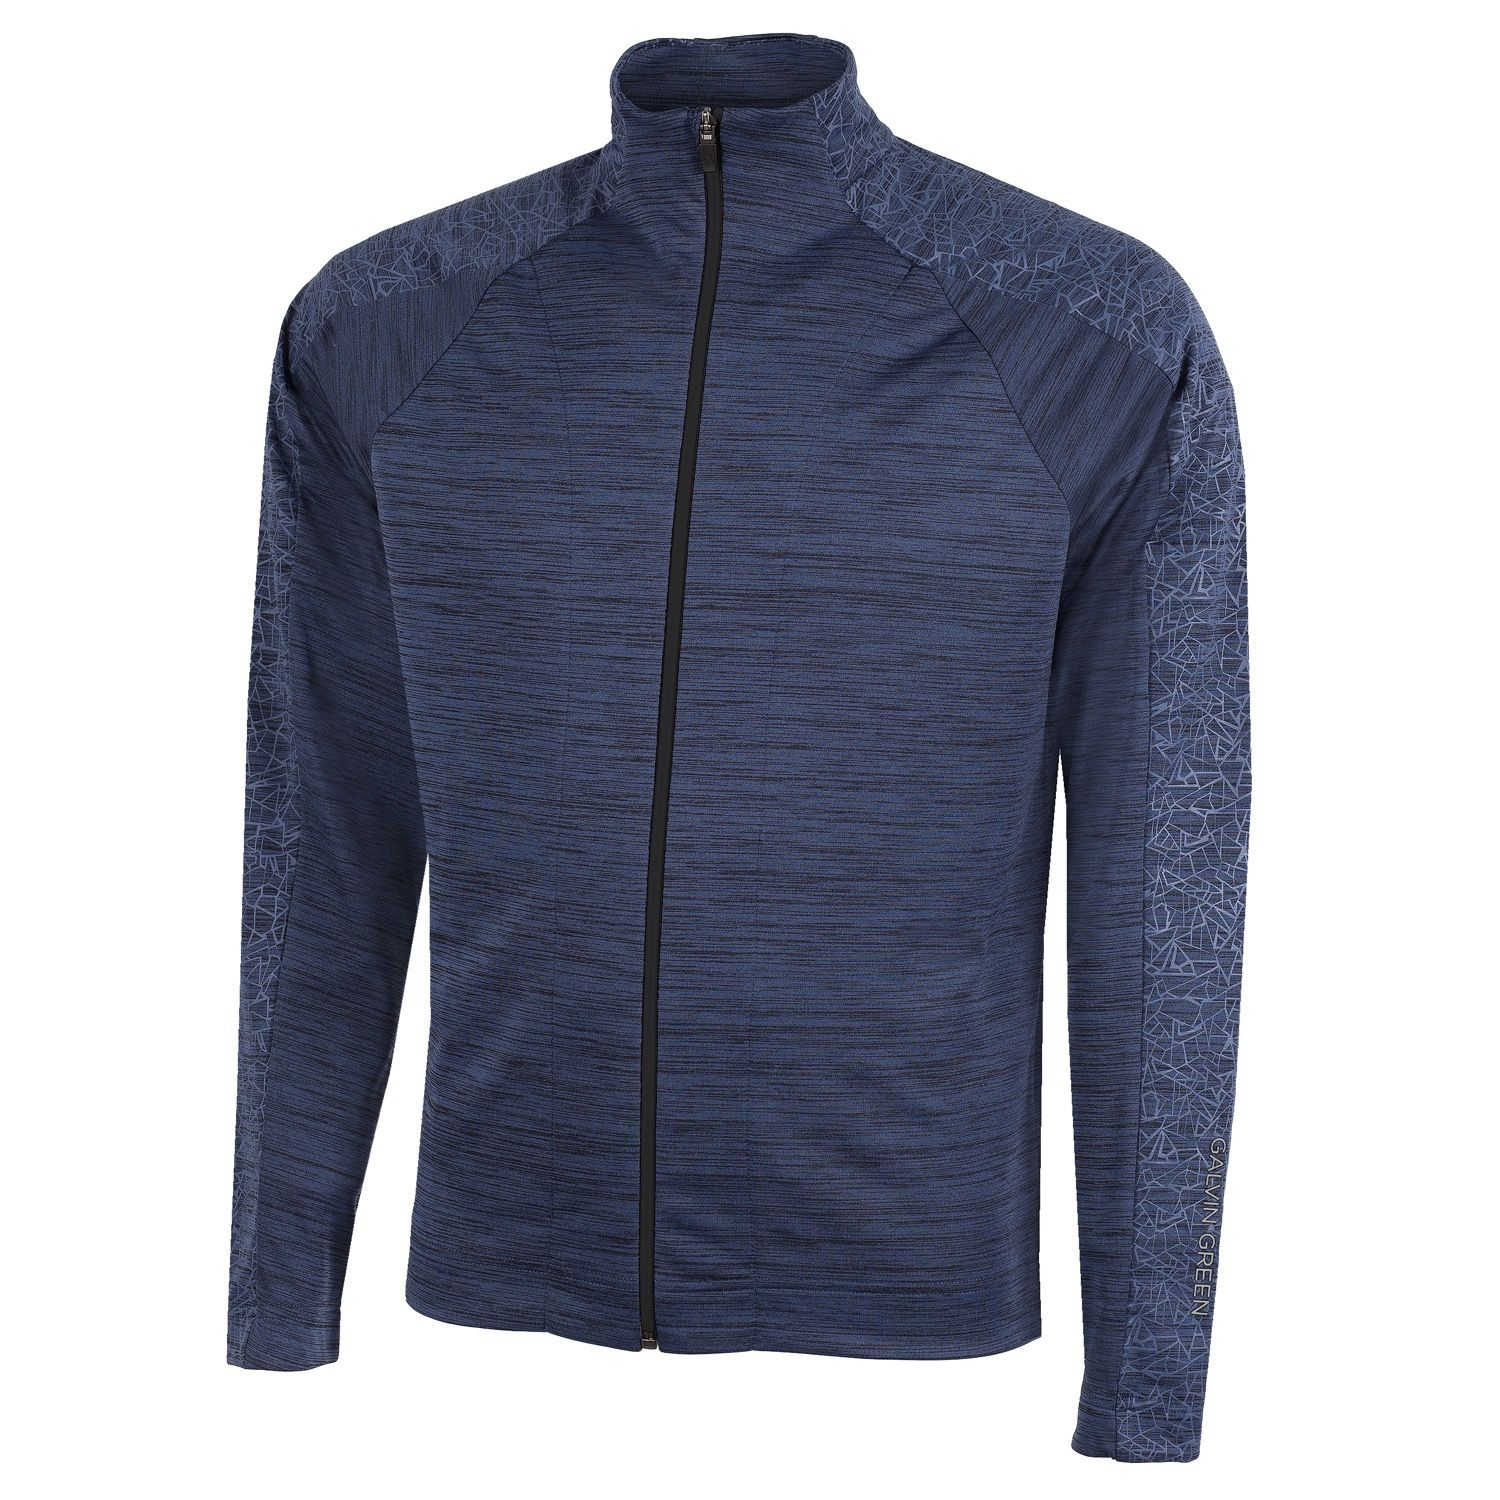 Image of Galvin Green Declan Insula Jacket